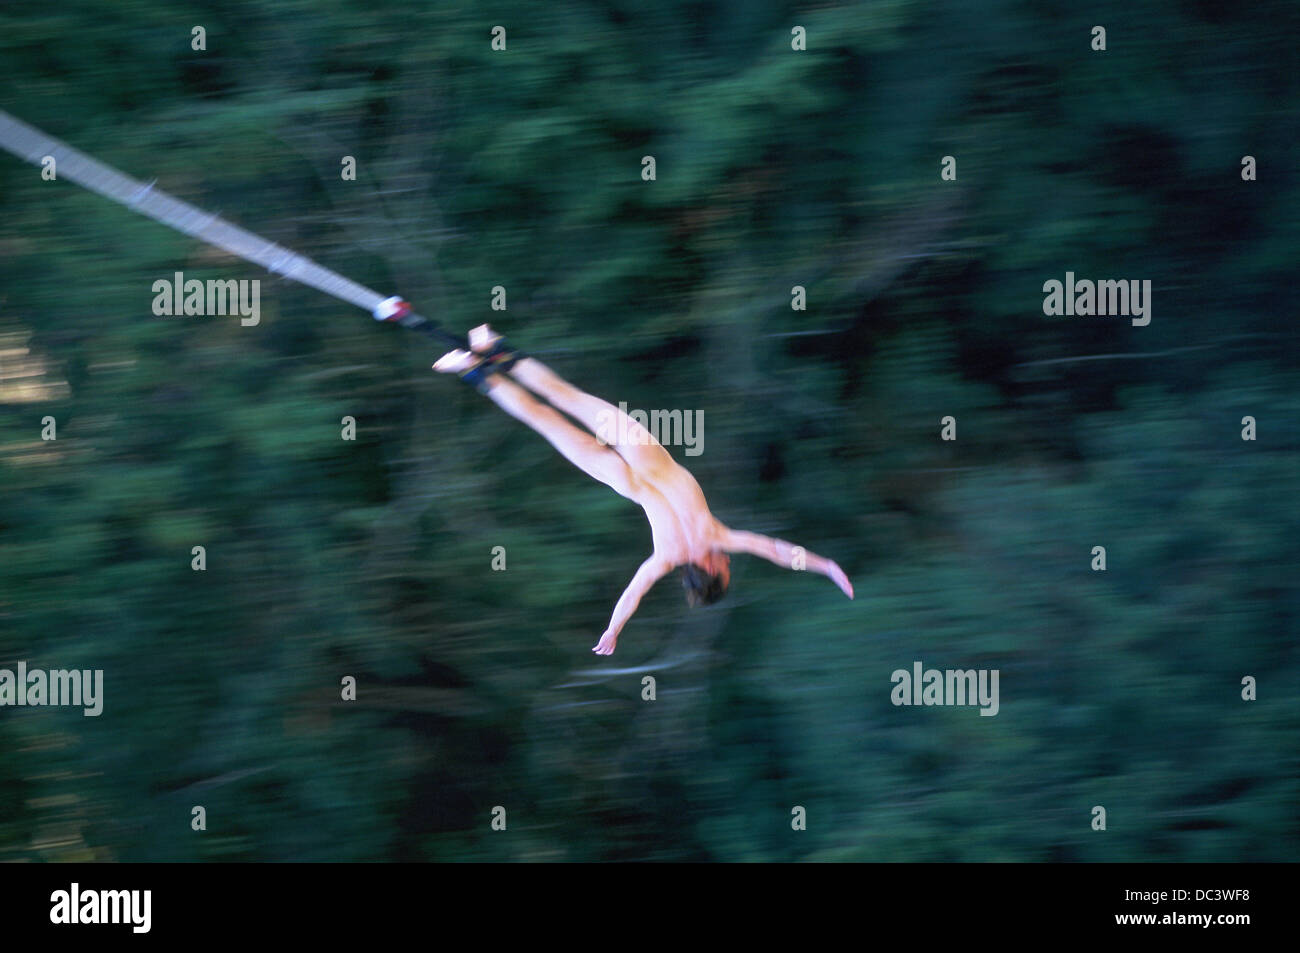 Nude bungy jumping pictures